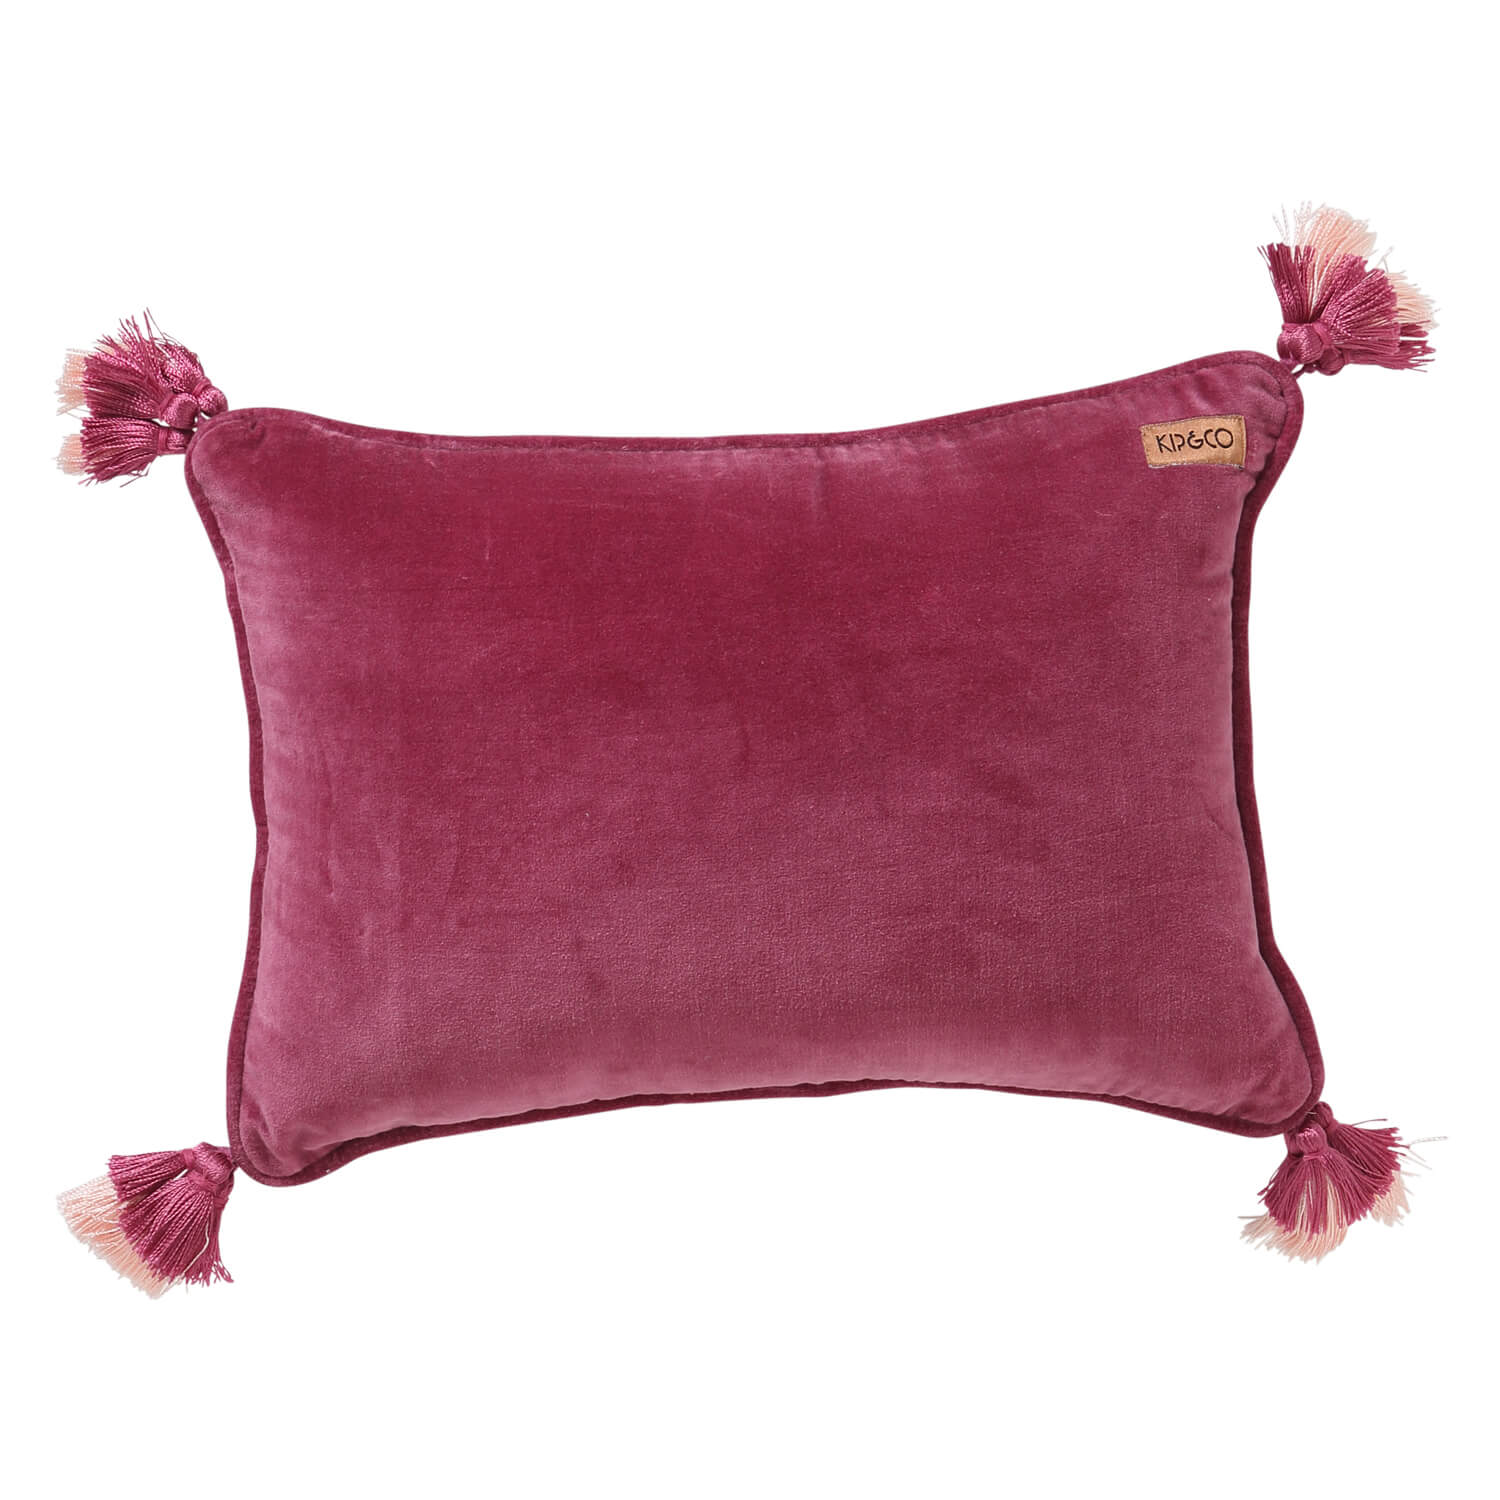 Kip and co Velvet Souk Cushion - Peony rose pink | The Home Maven